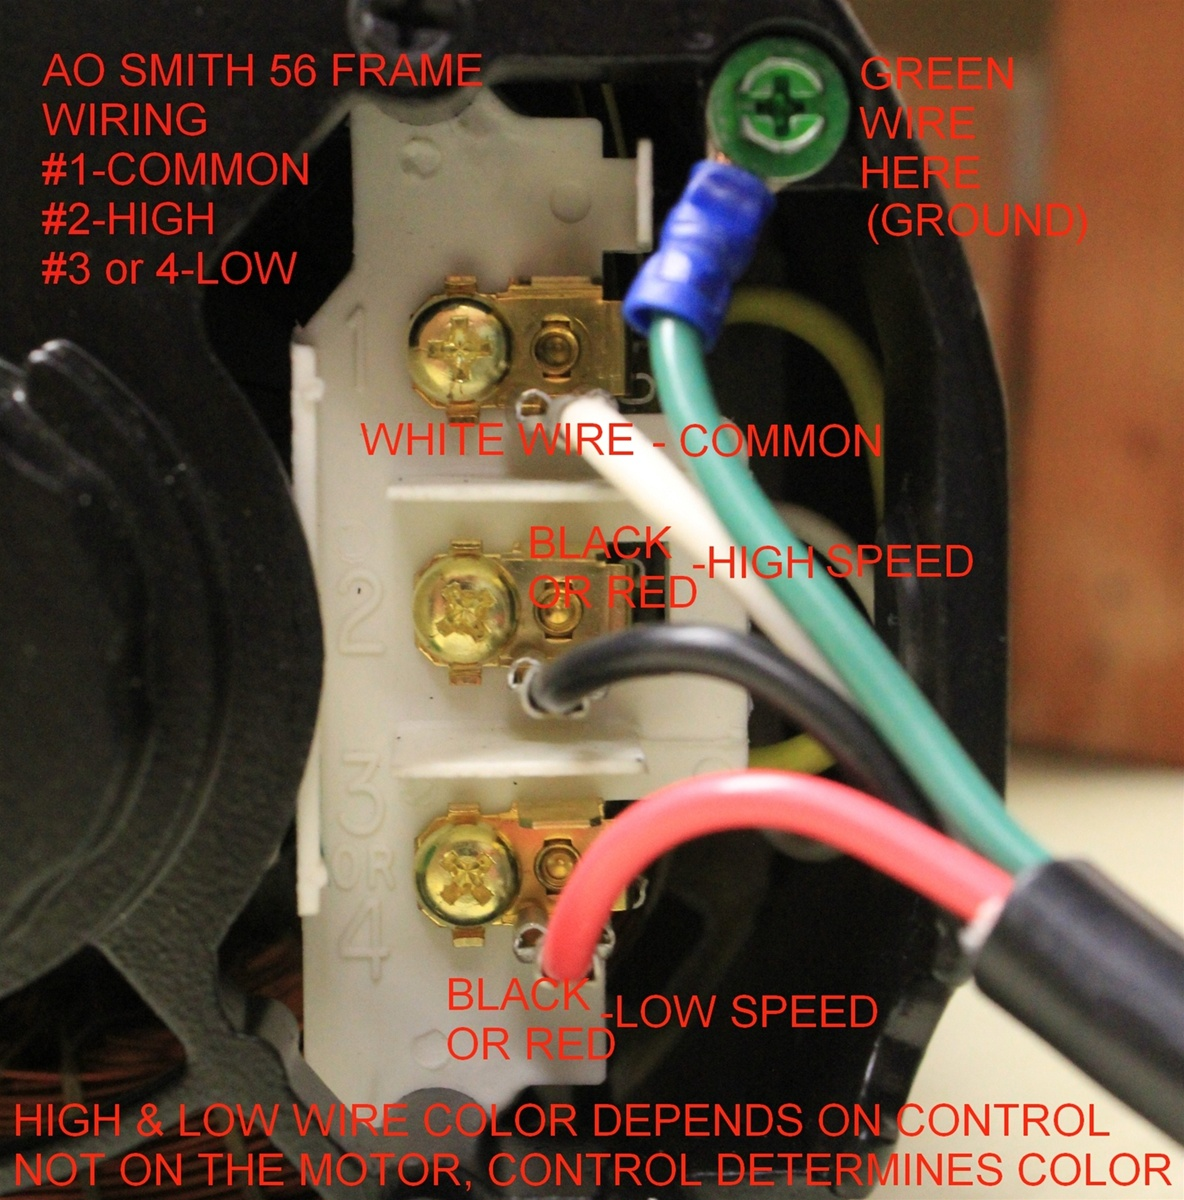 Waterway372162113 7 waterway spa pump 3721621 13 372162113 p240e5252024 pf 40 2n22c waterway pump wiring diagram at mifinder.co